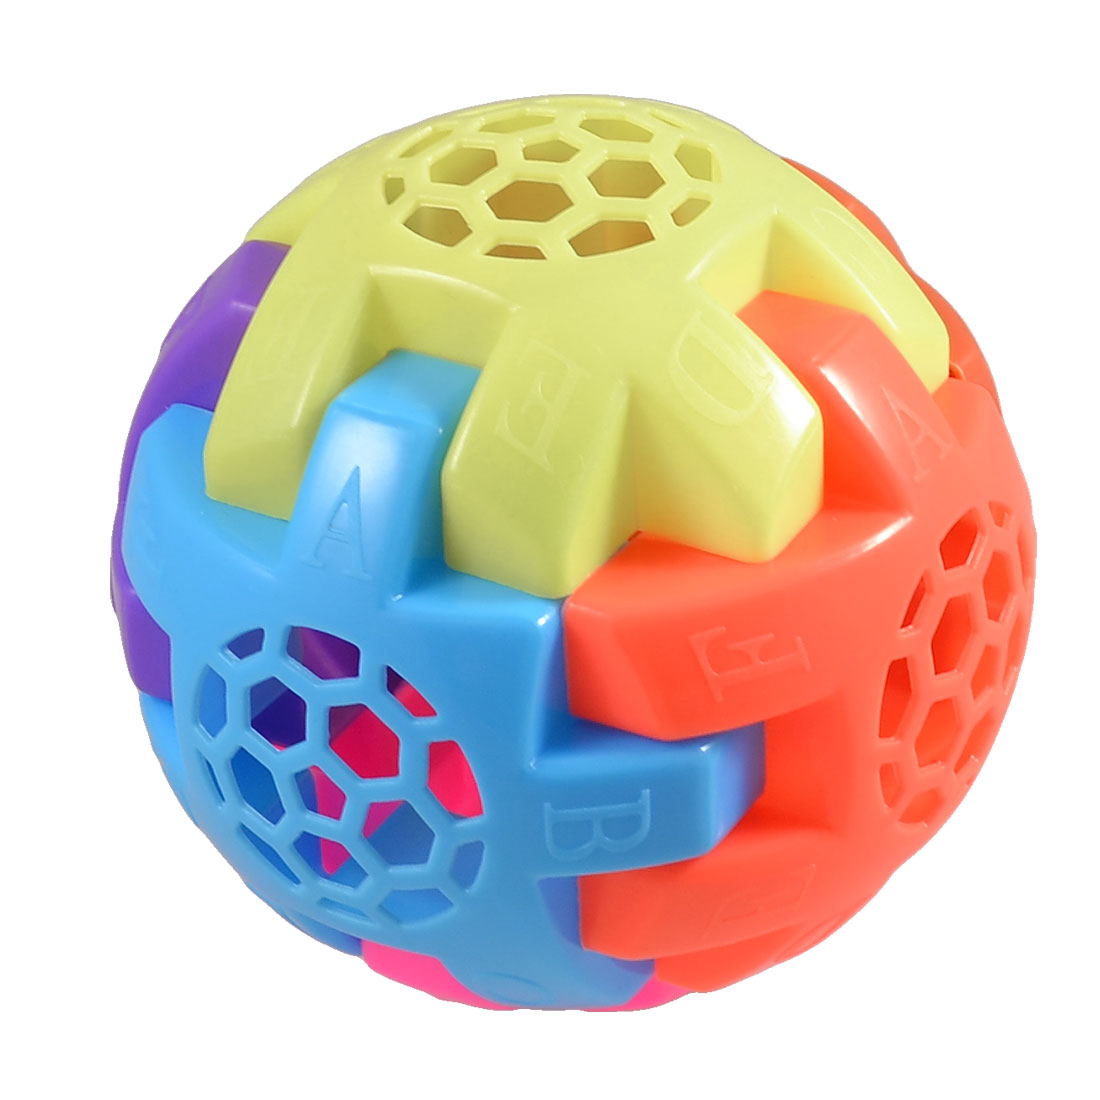 Assorted Color Plastic Combination Ball Toy for Children